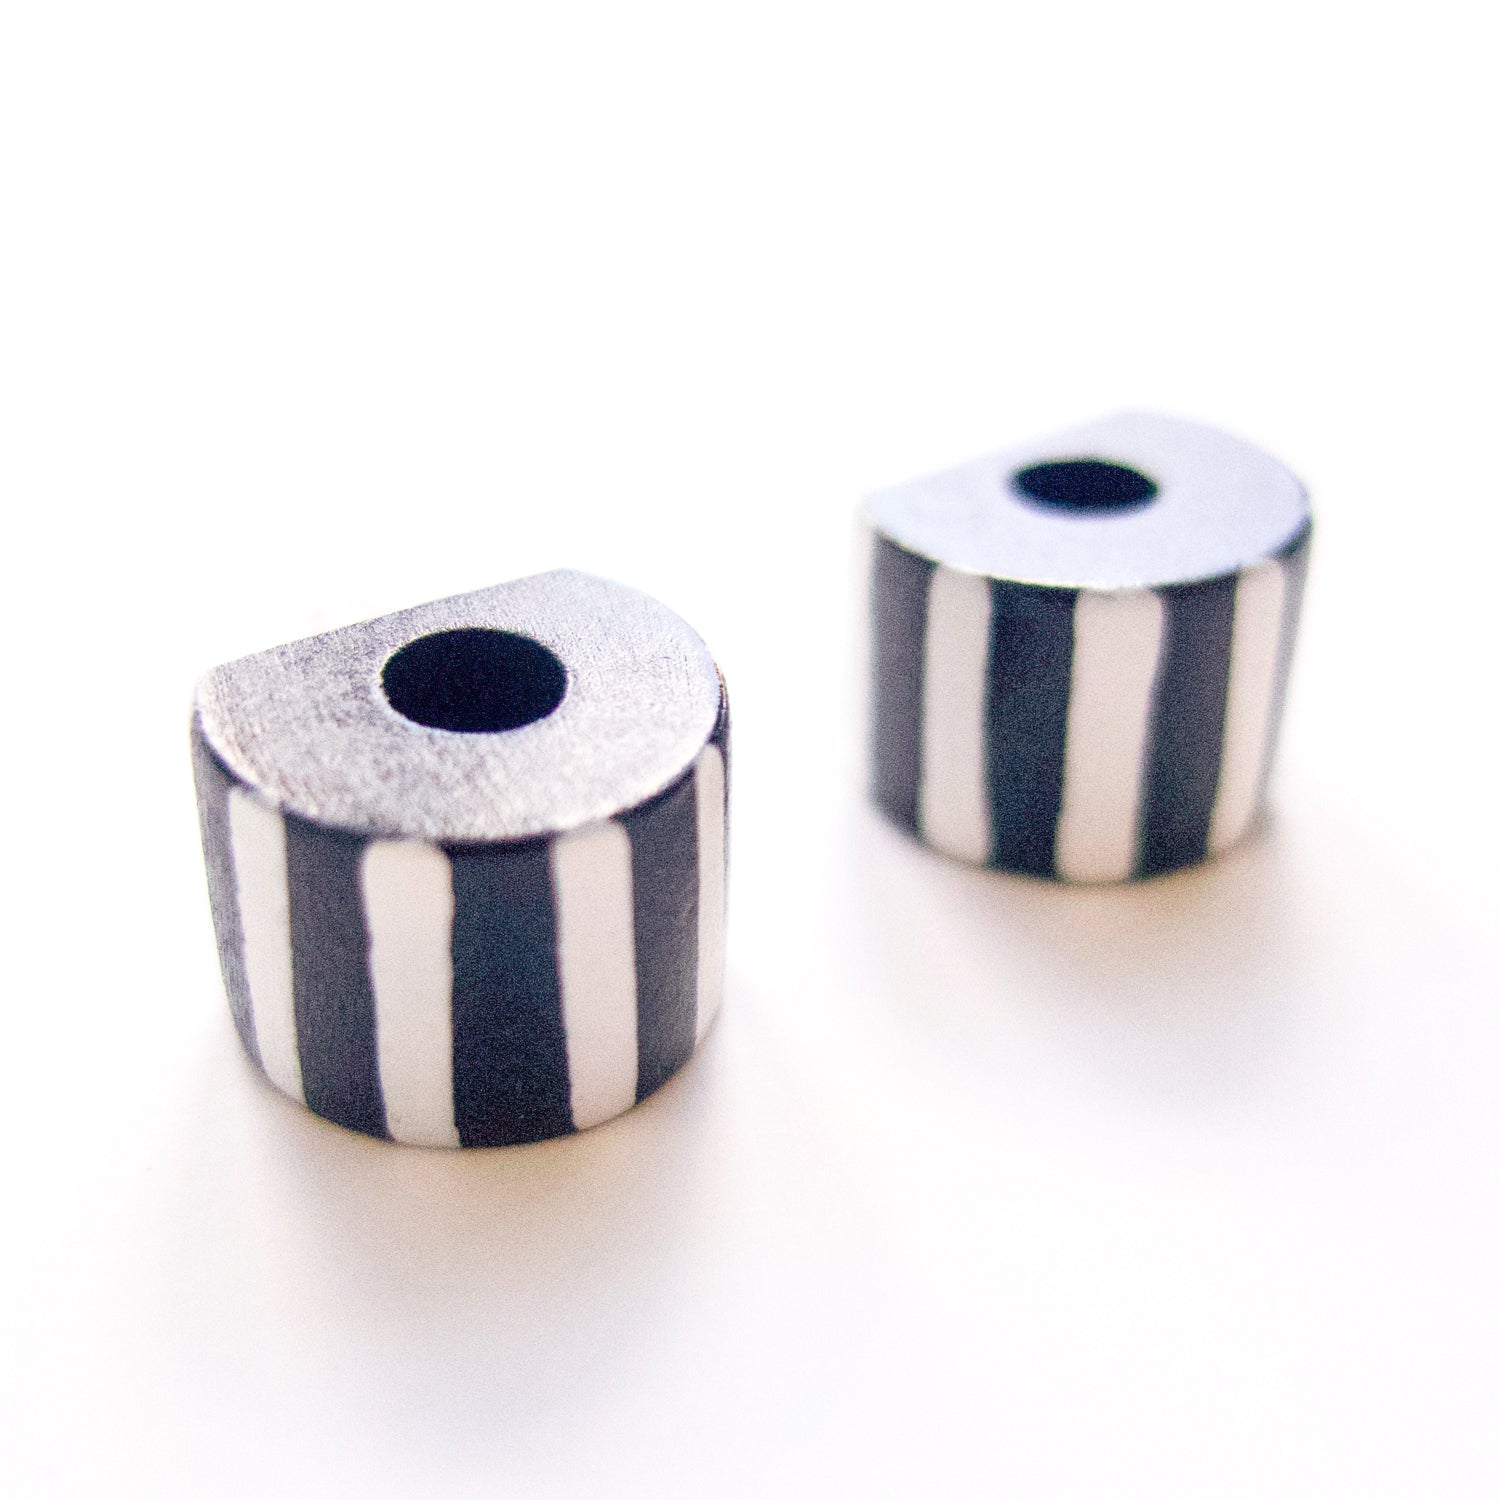 "Second Room Vintage Clothing. Vintage black and white painted stripe wood earrings, with a hole in the center. Earrings are 0.5"" all around. Free North American shipping on all orders."